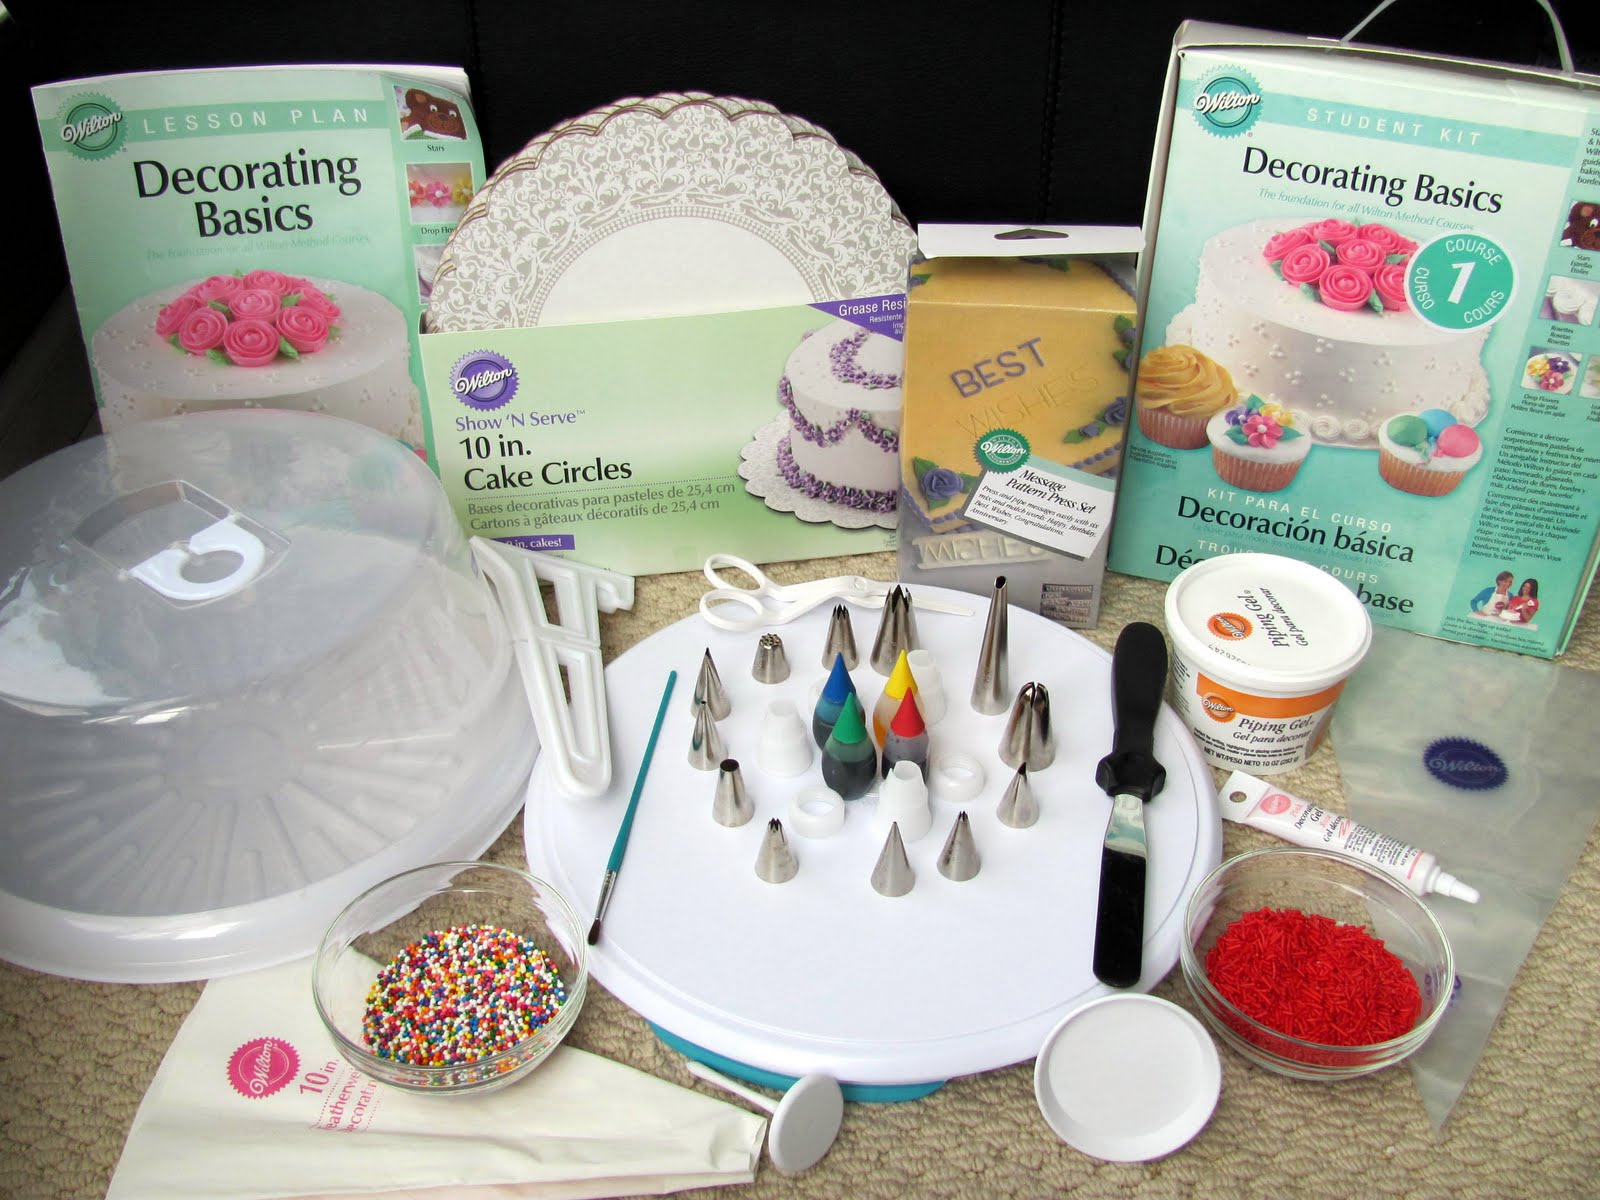 Michaels Cake Decorating Kit For Class : [michaels cake decorating class supply list] - 28 images ...